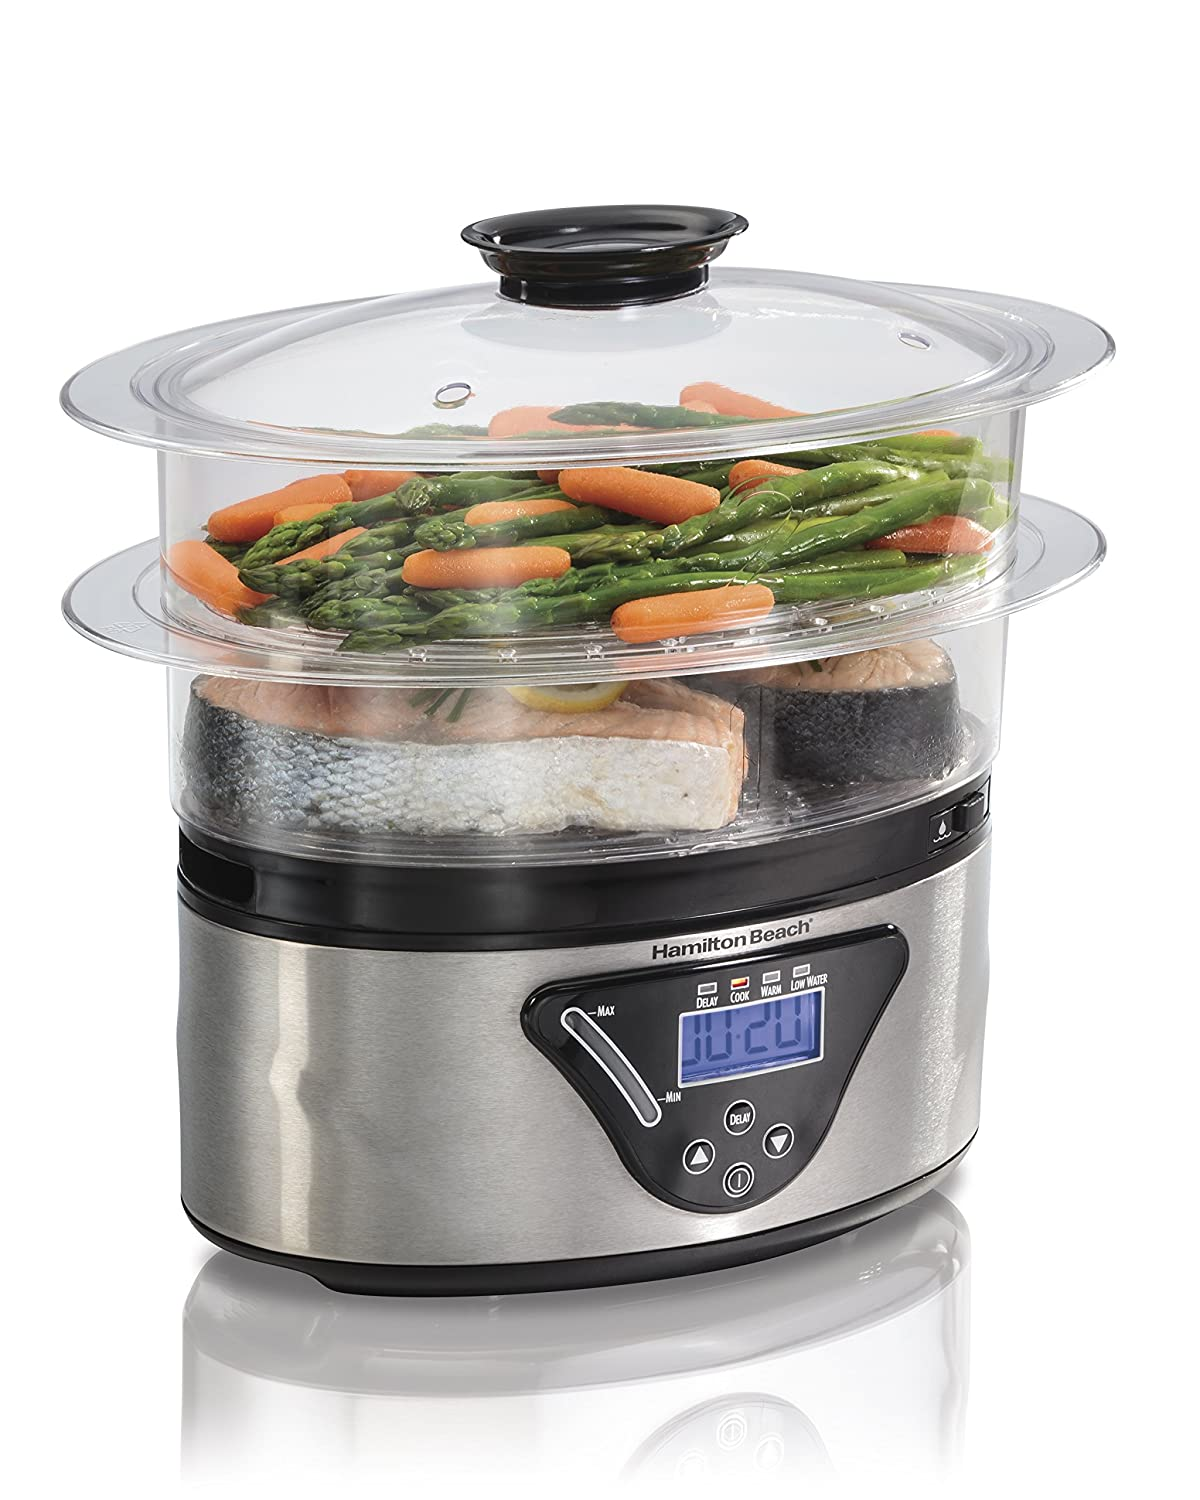 Hamilton-Beach 37530A 5.5 Quart Digital Food Steamer, Silver Hamilton Beach